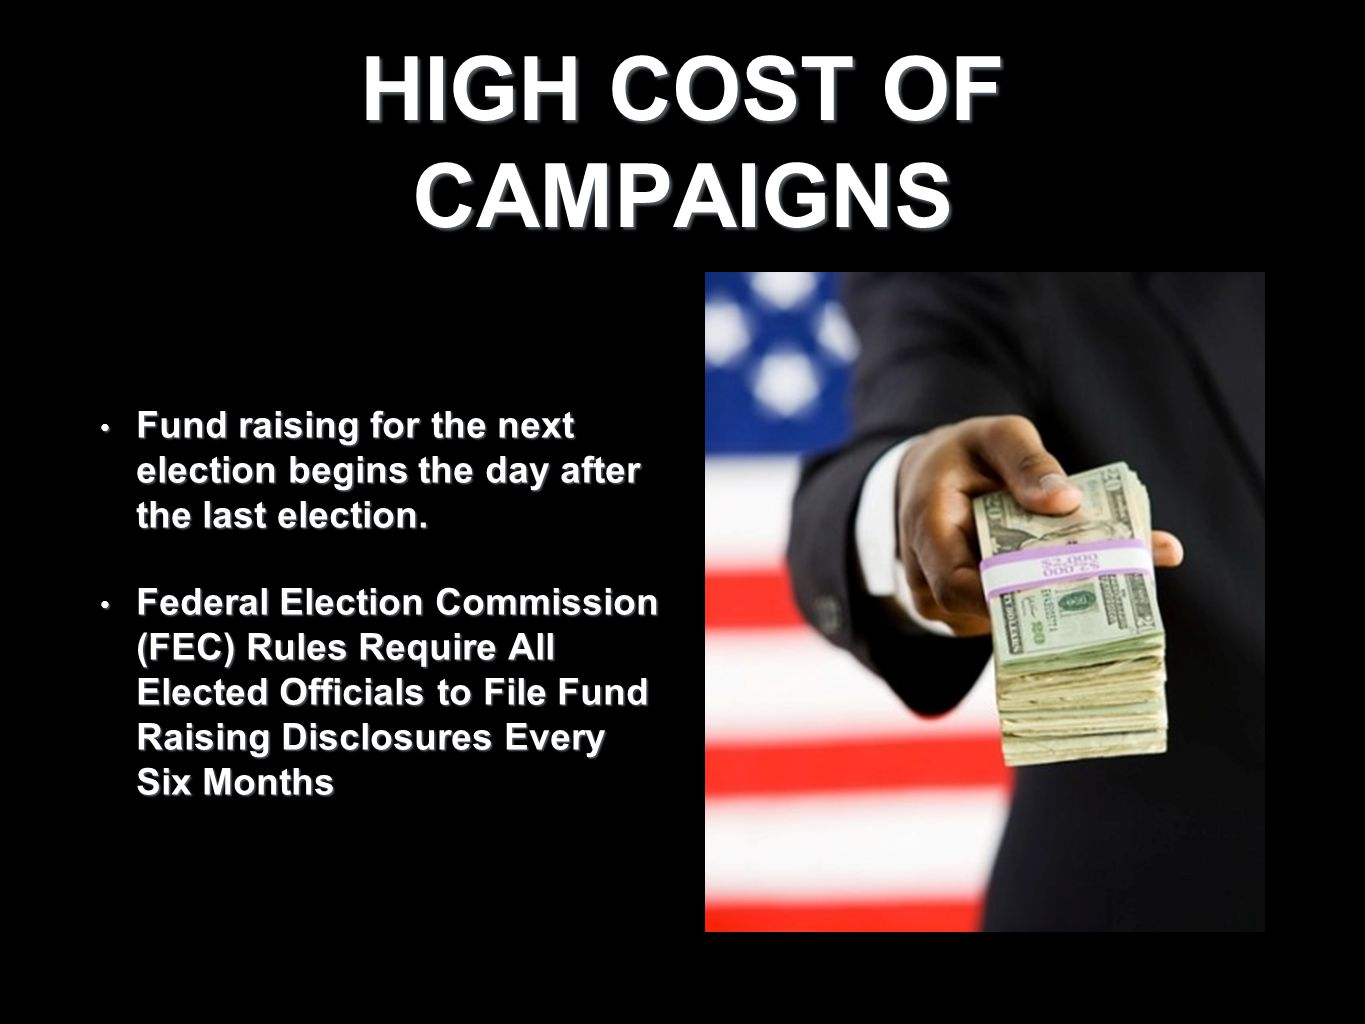 HIGH COST OF CAMPAIGNS Fund raising for the next election begins the day after the last election. Fund raising for the next election begins the day af